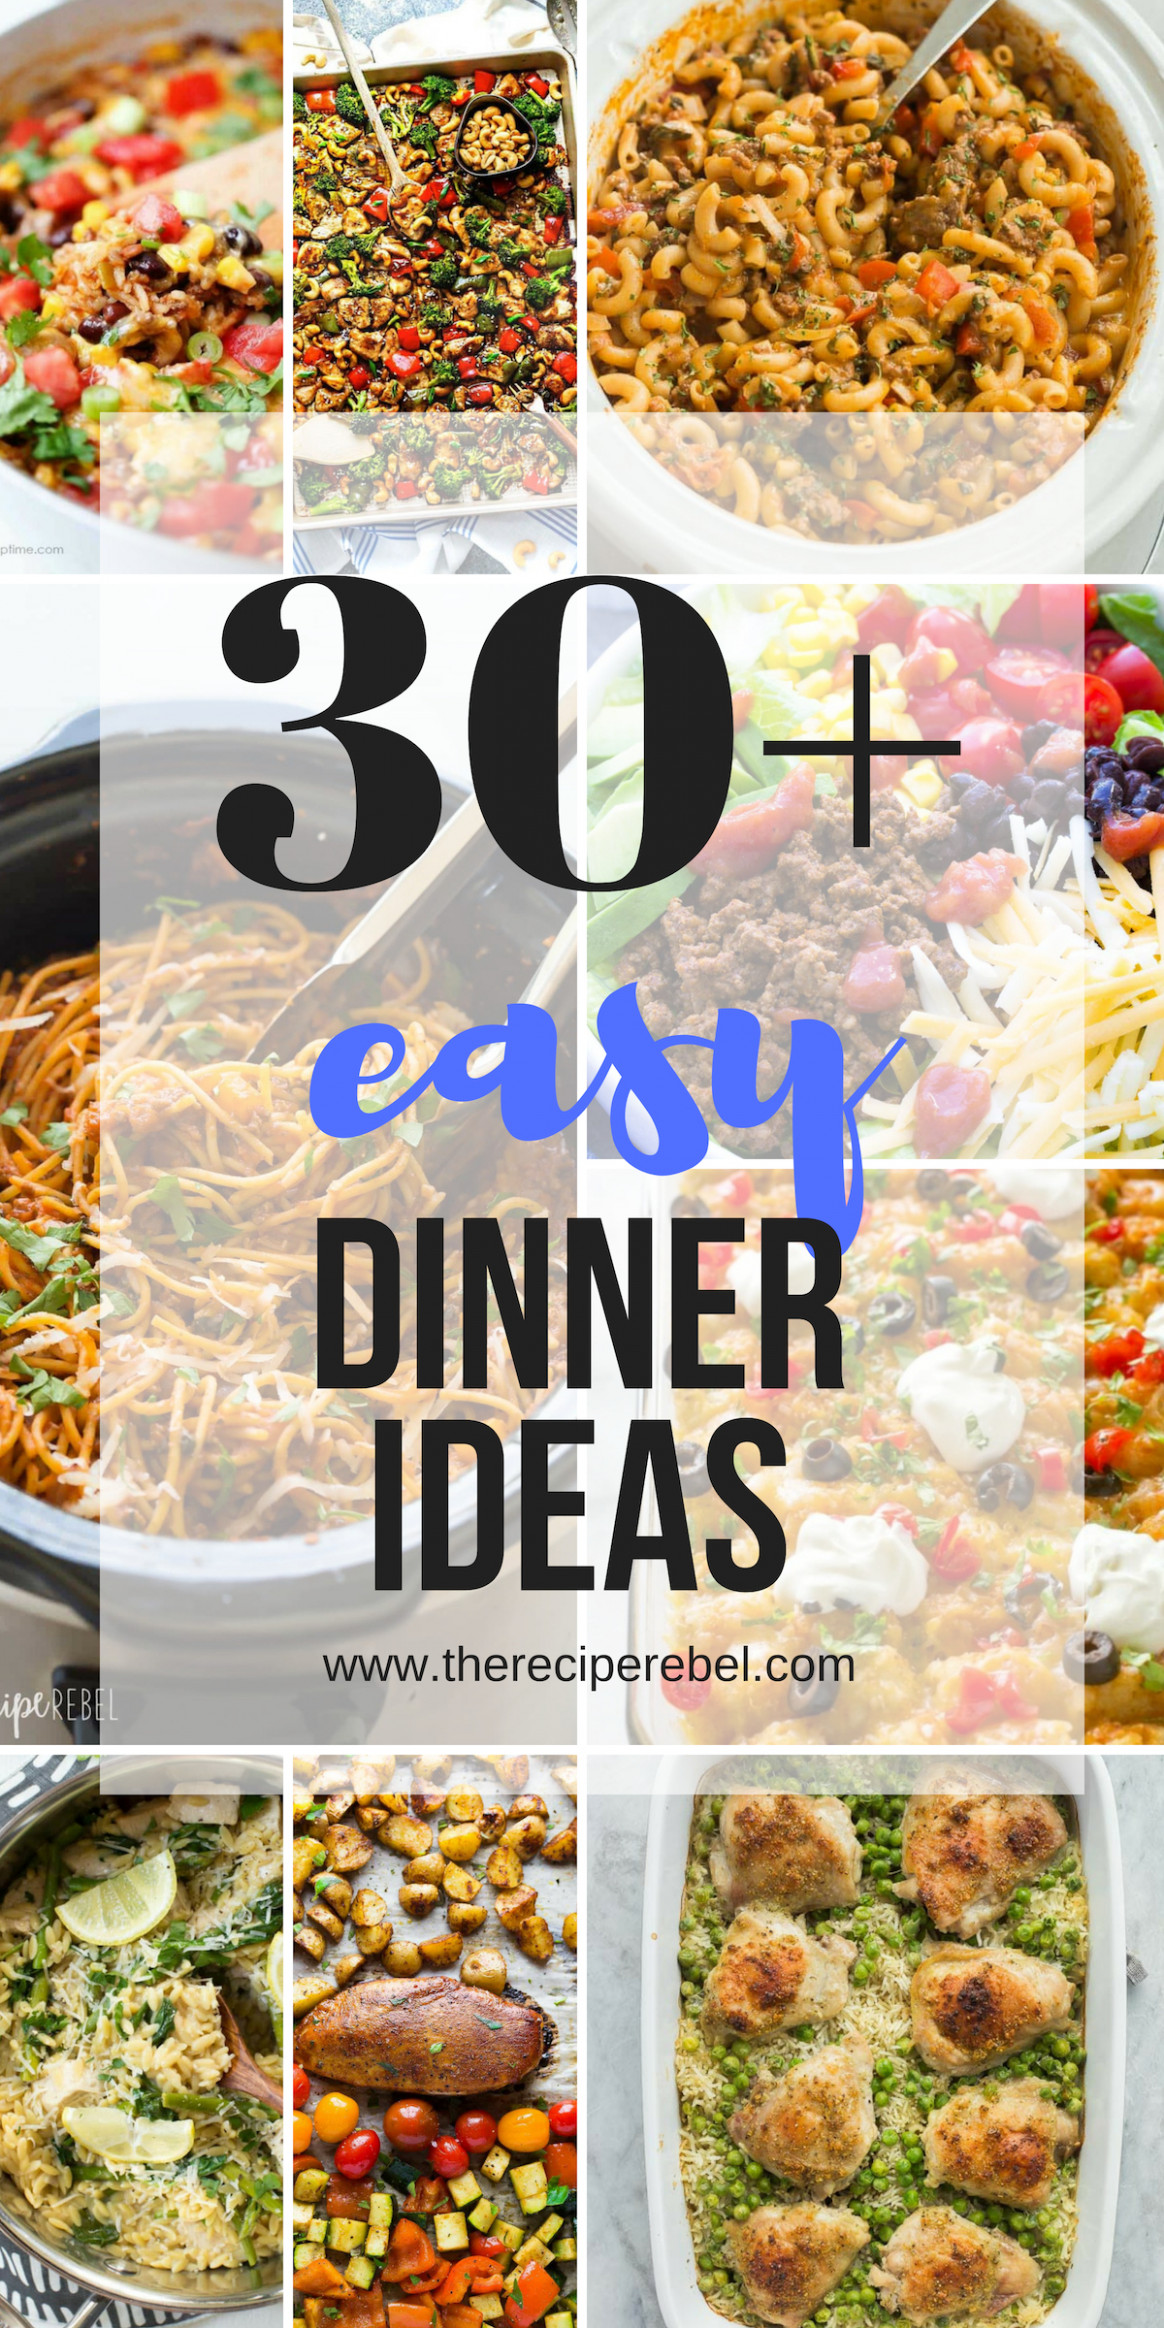 14+ Quick and Easy Dinner Ideas - family friendly! - The ..